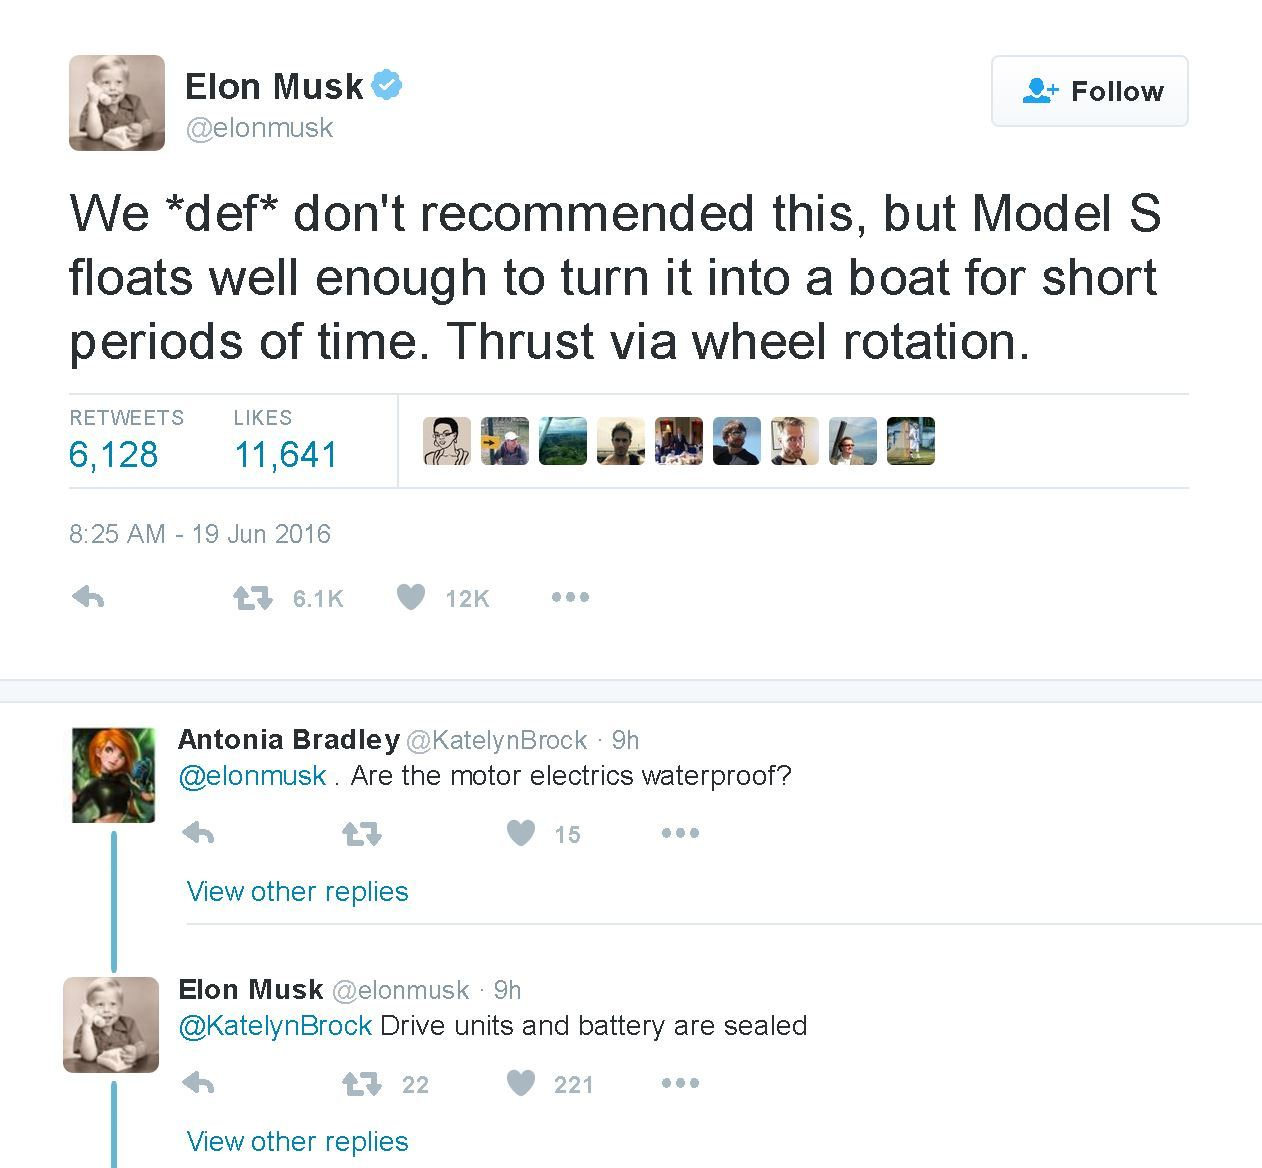 elon-musk-tweet-flood_zoldautok